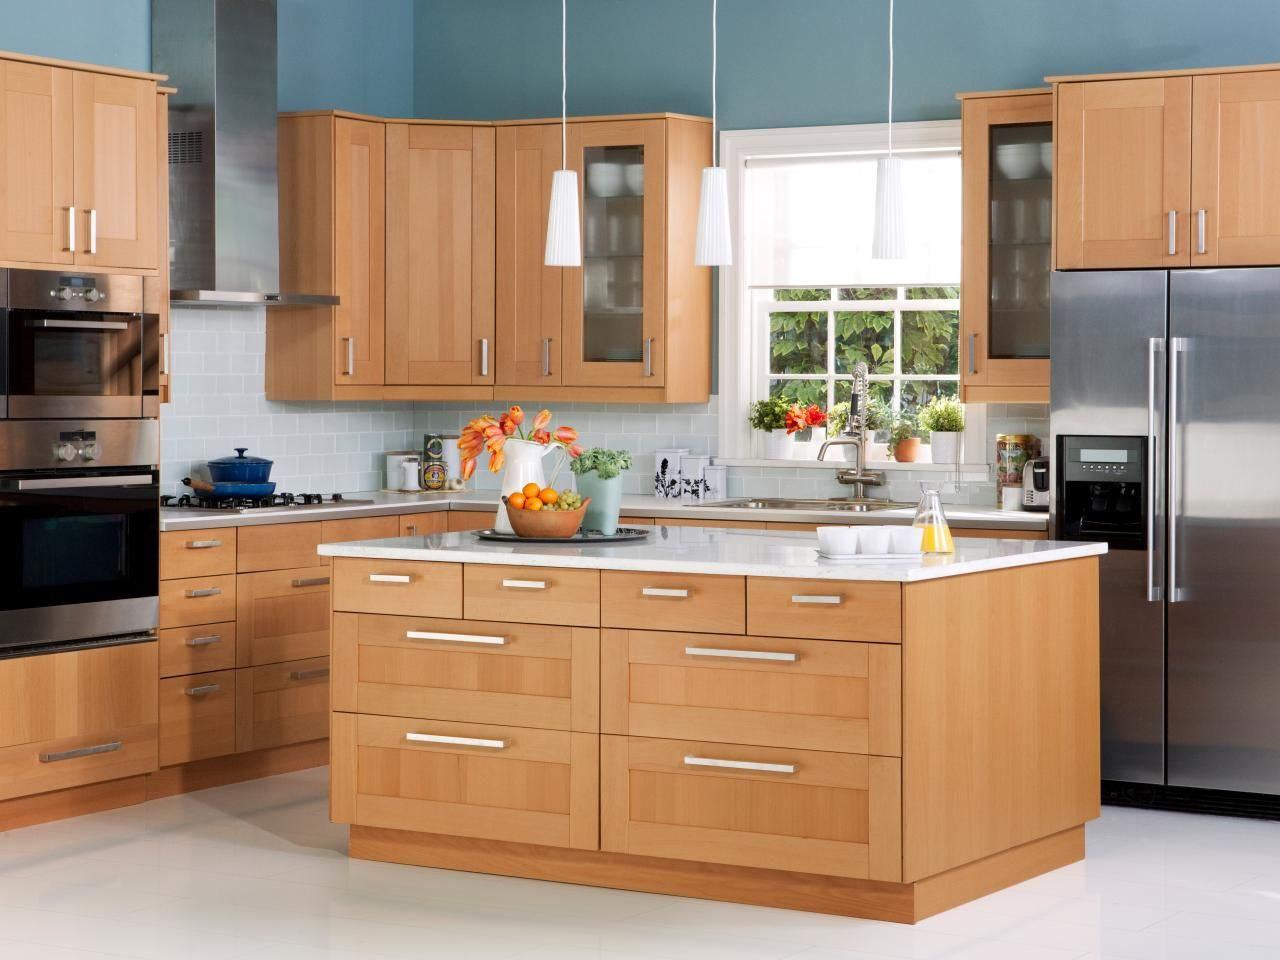 Ikea Kitchen Cabinets ikea-kitchen-cabinets-cost-estimate | fantastic kitchen ideas